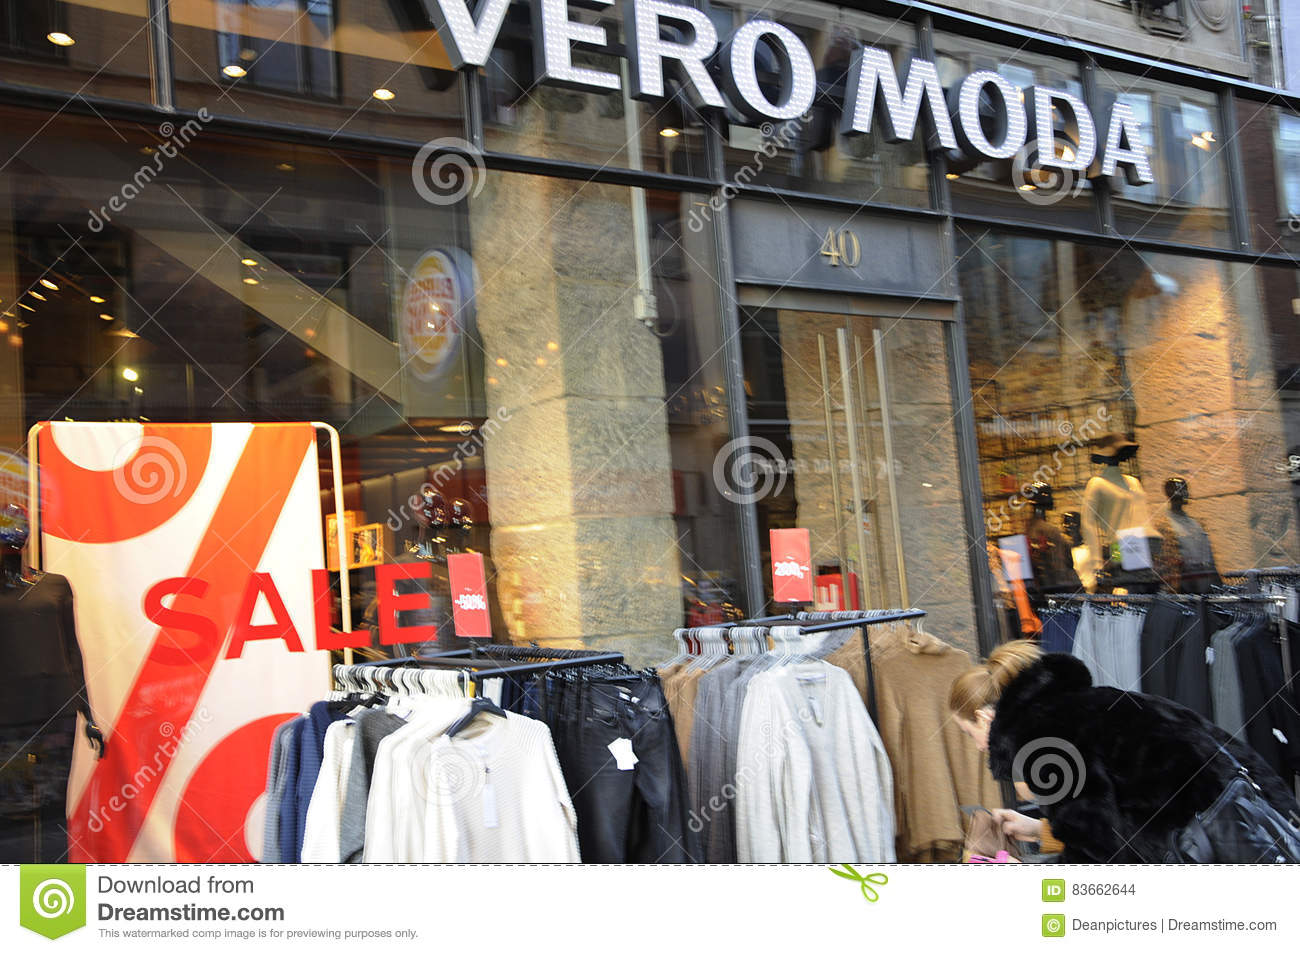 hot sale online cf18a 1f626 Sale at vero moda store editorial stock image. Image of ...